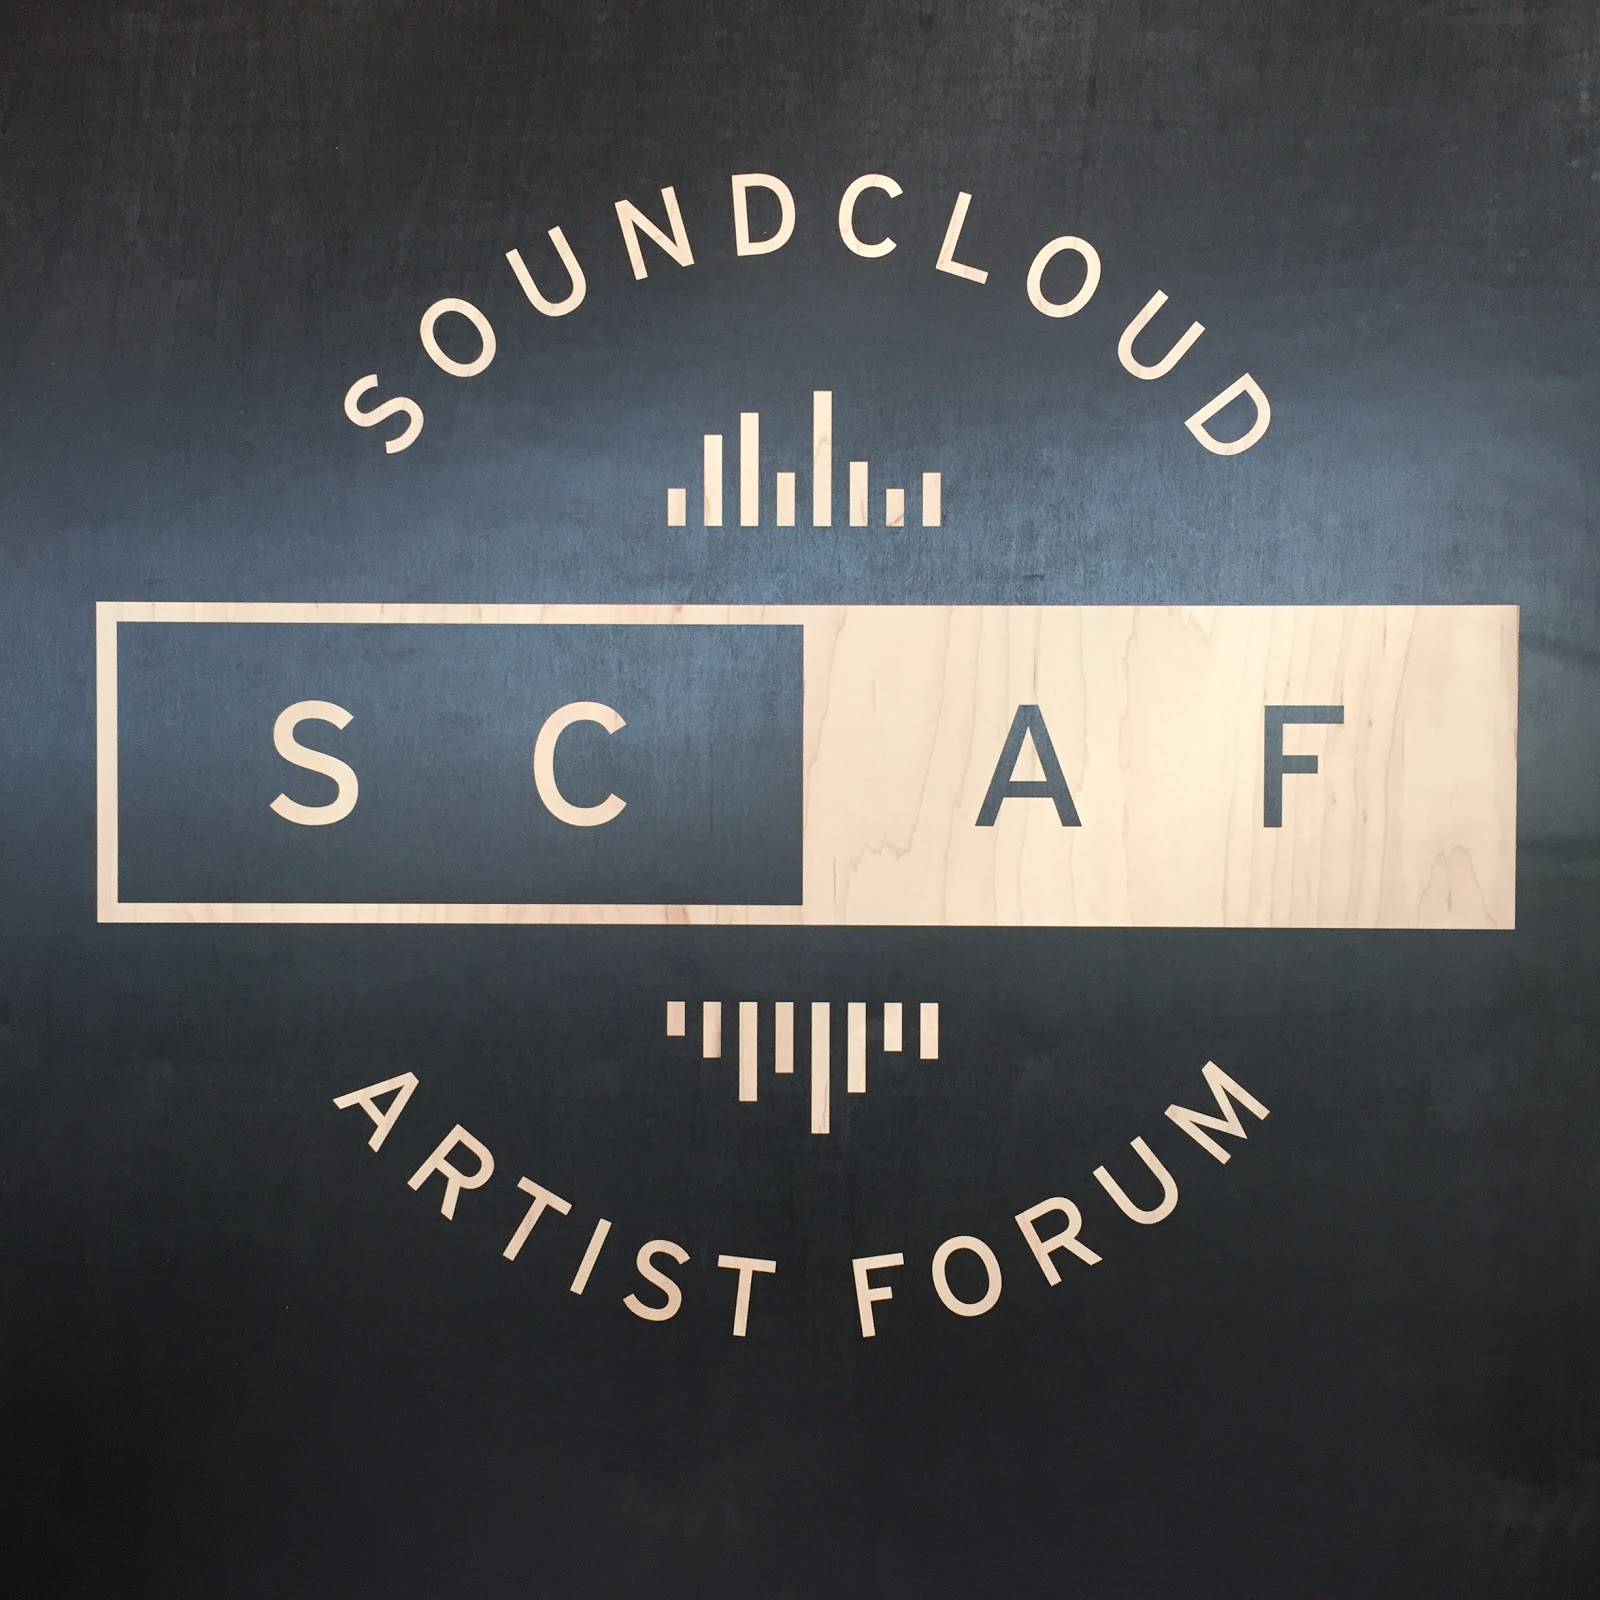 Three music career tips we learned at the SoundCloud Artist Forum